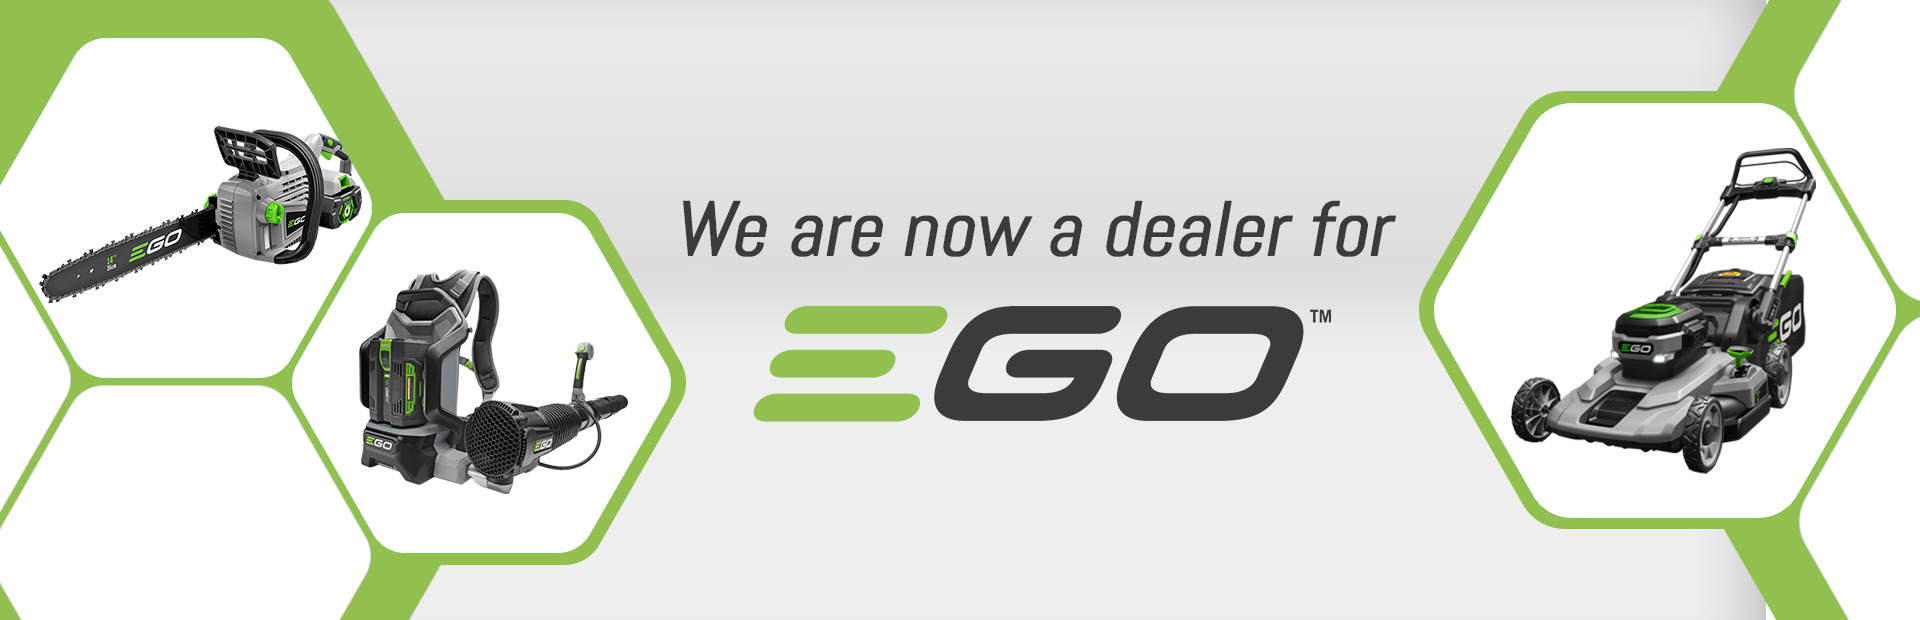 We are now a dealer for EGO!